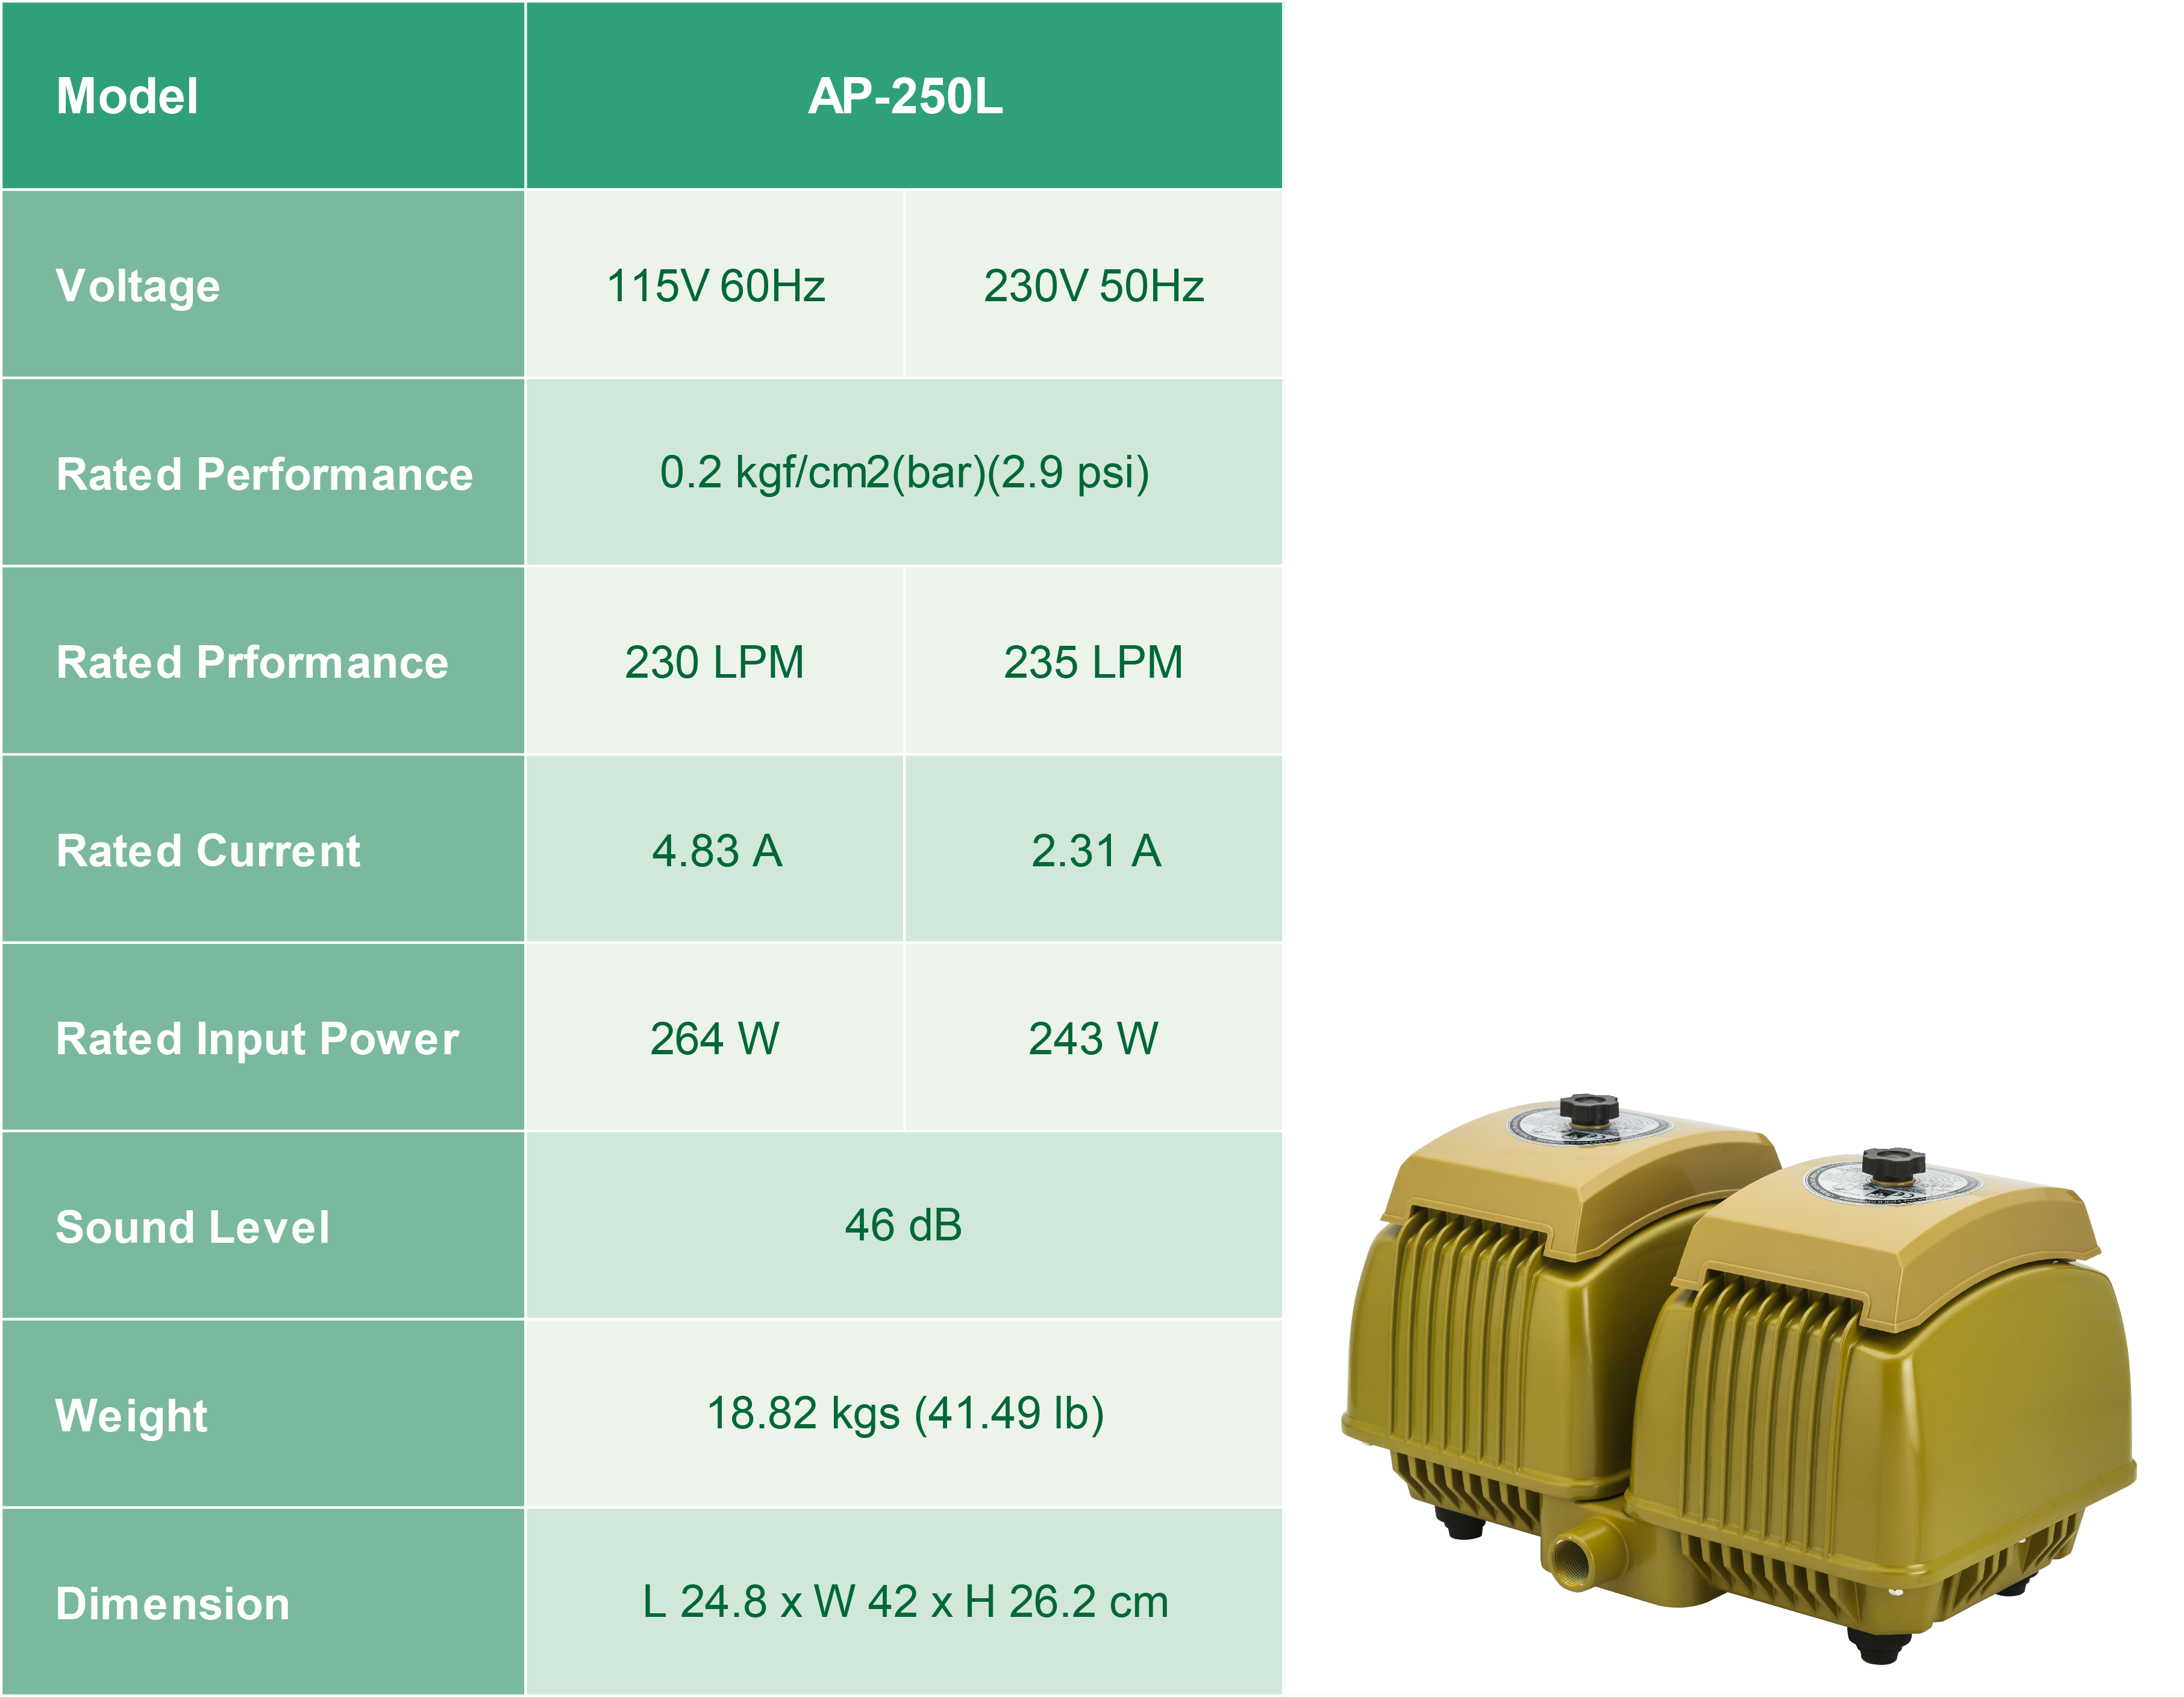 Linear Air Pumps AP-250L Performance